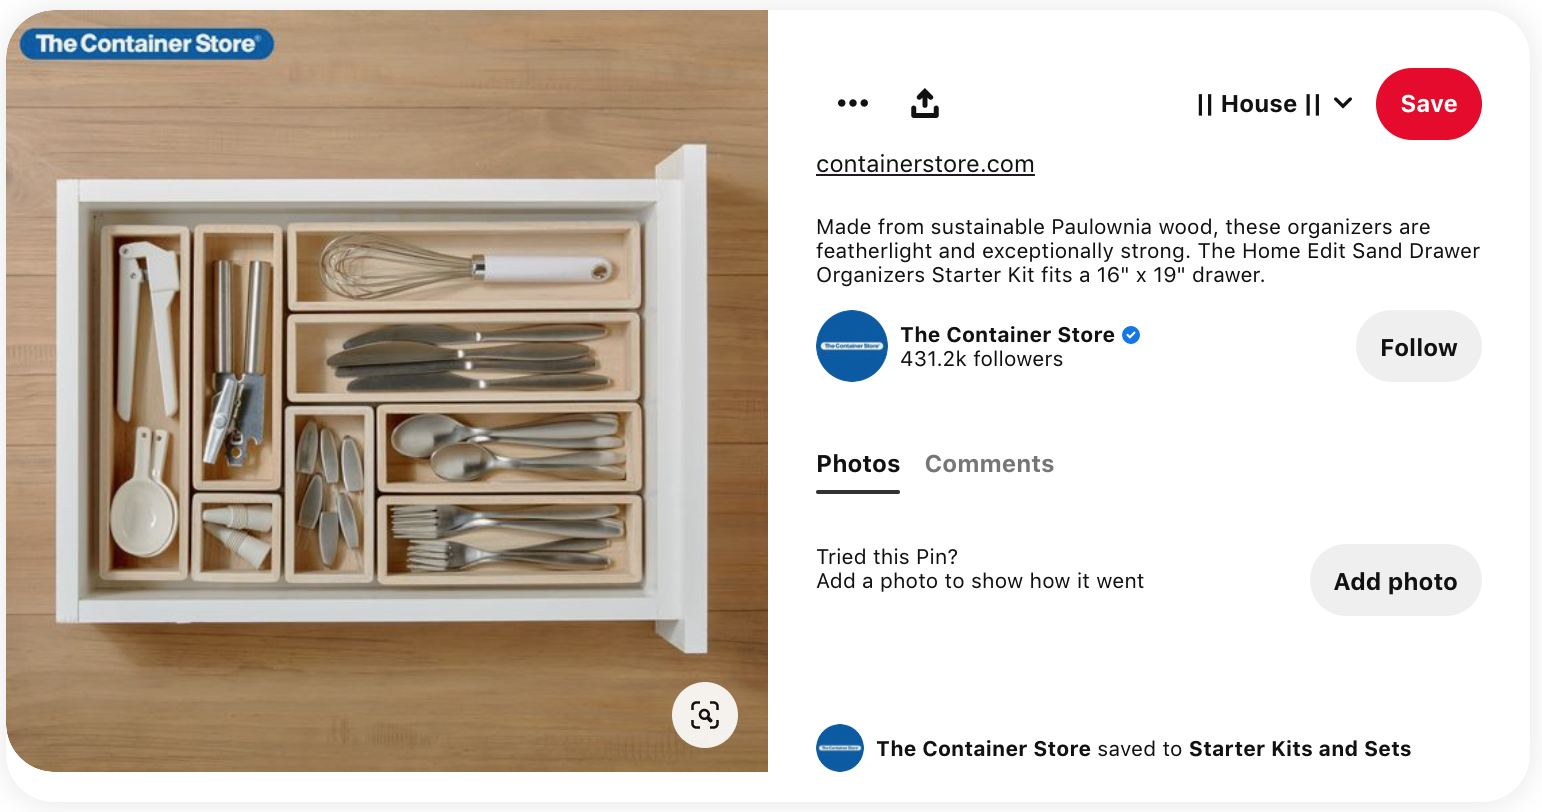 Excellent Branding Strategy: The Container Store Pinterest